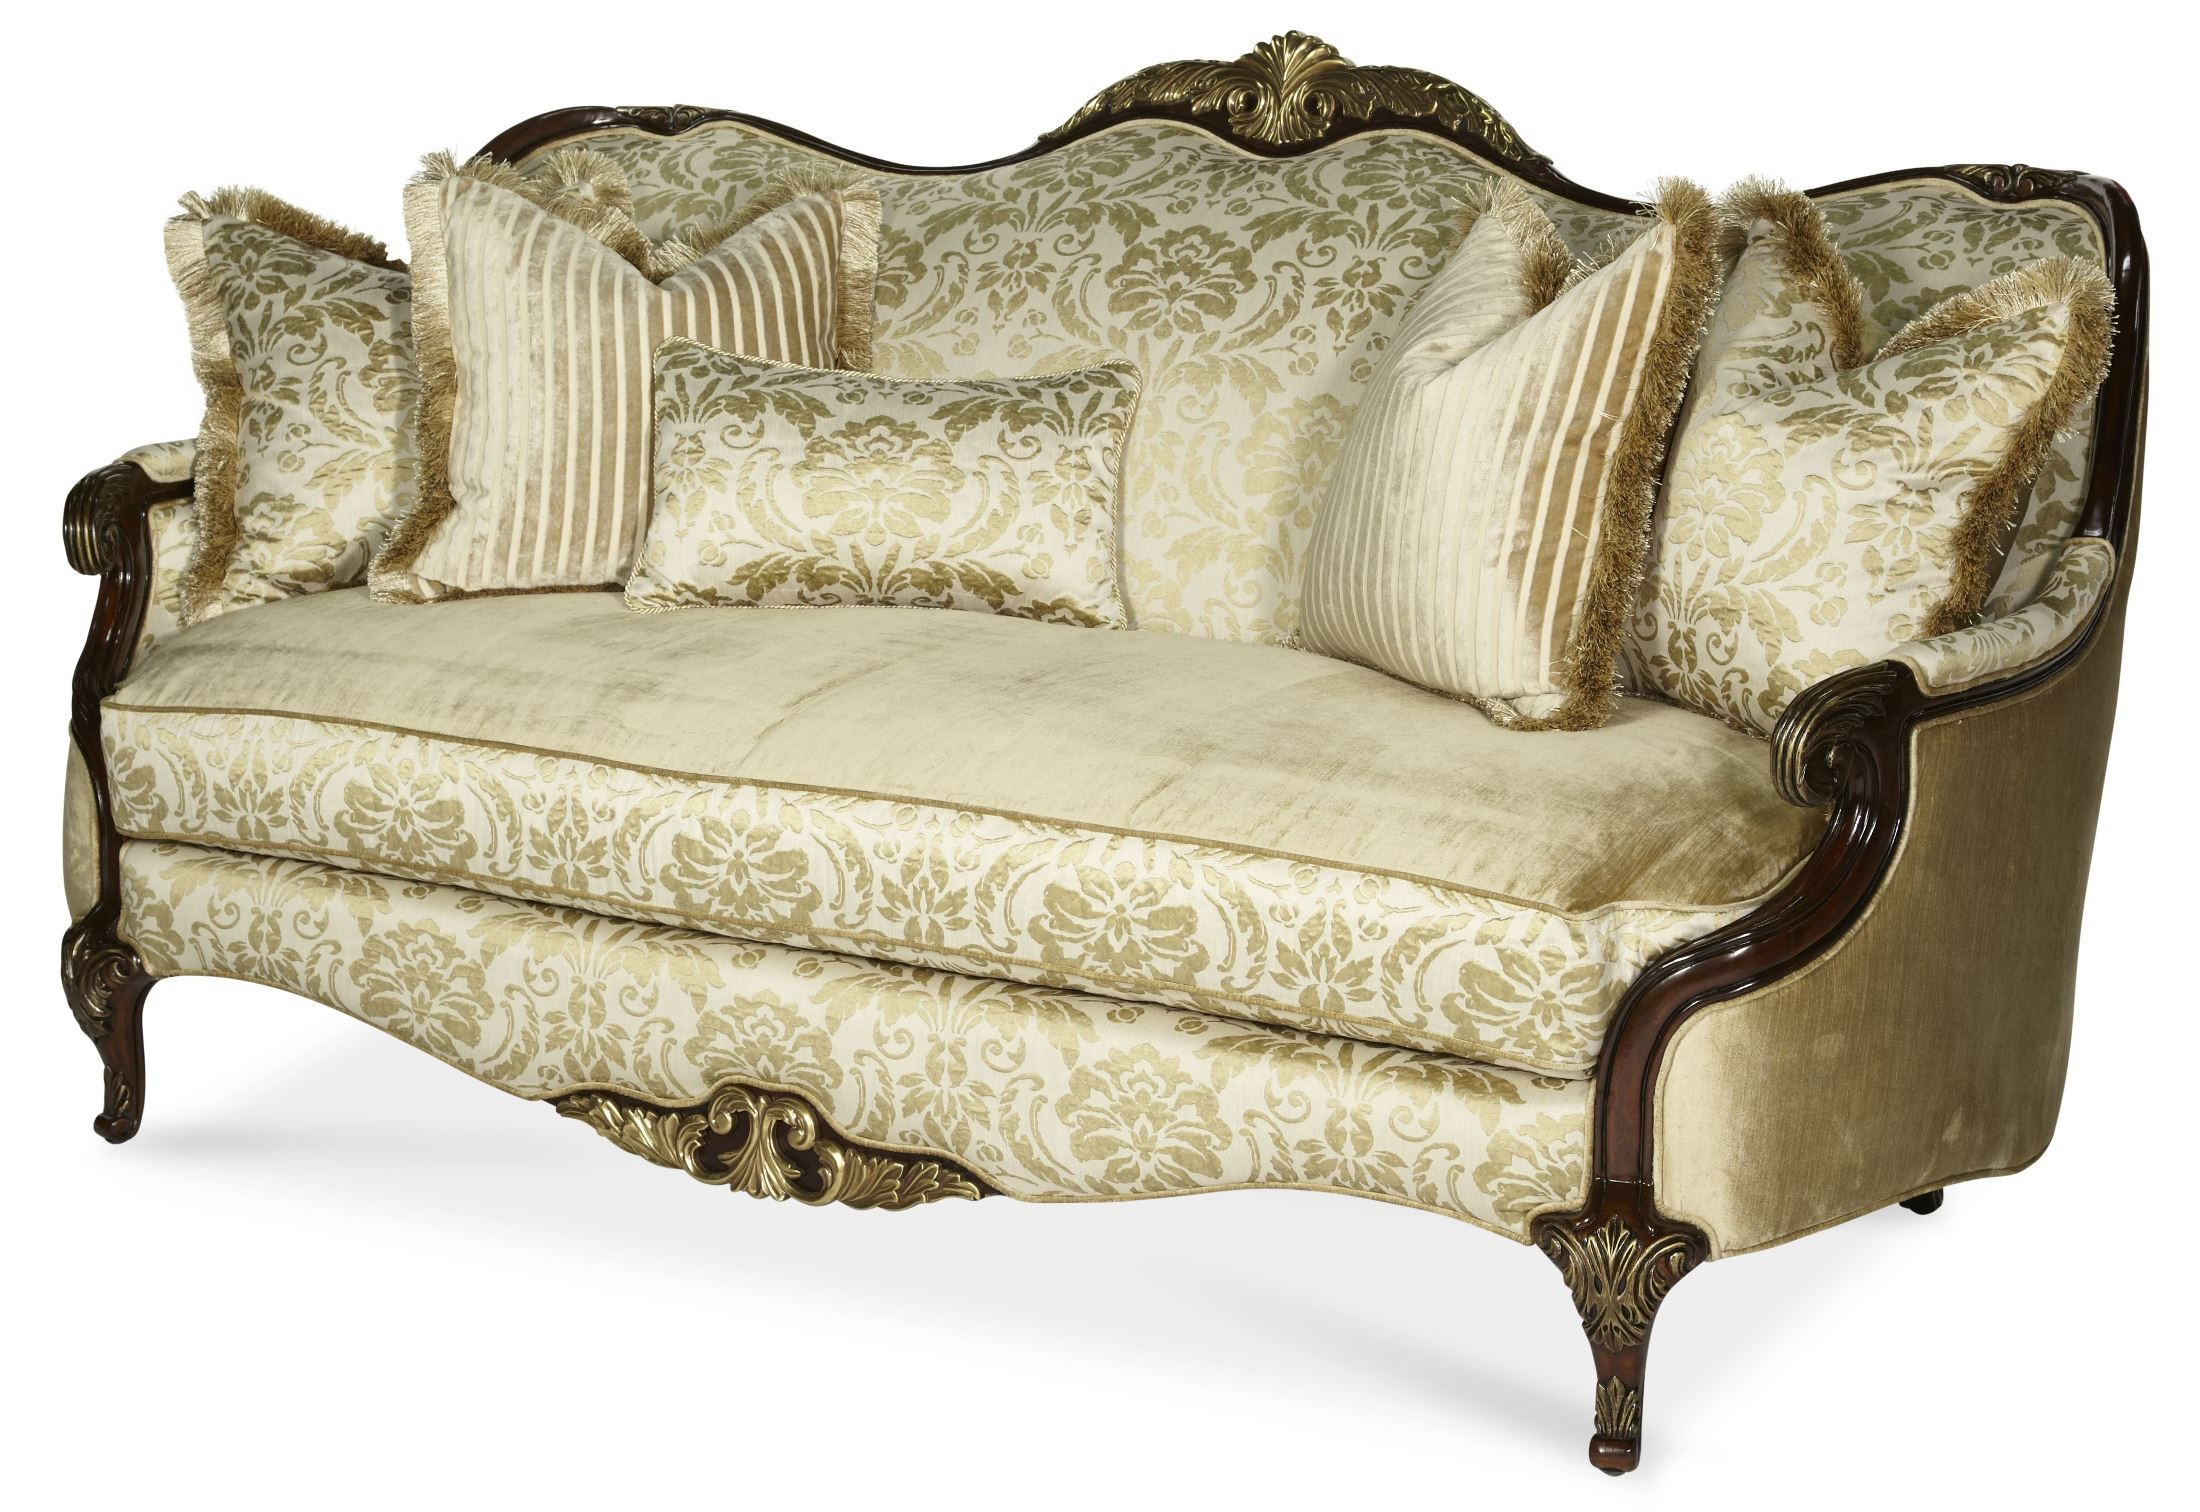 courts sofa sala set philippines imperial court wood trim from aico 79815 chpgn 40